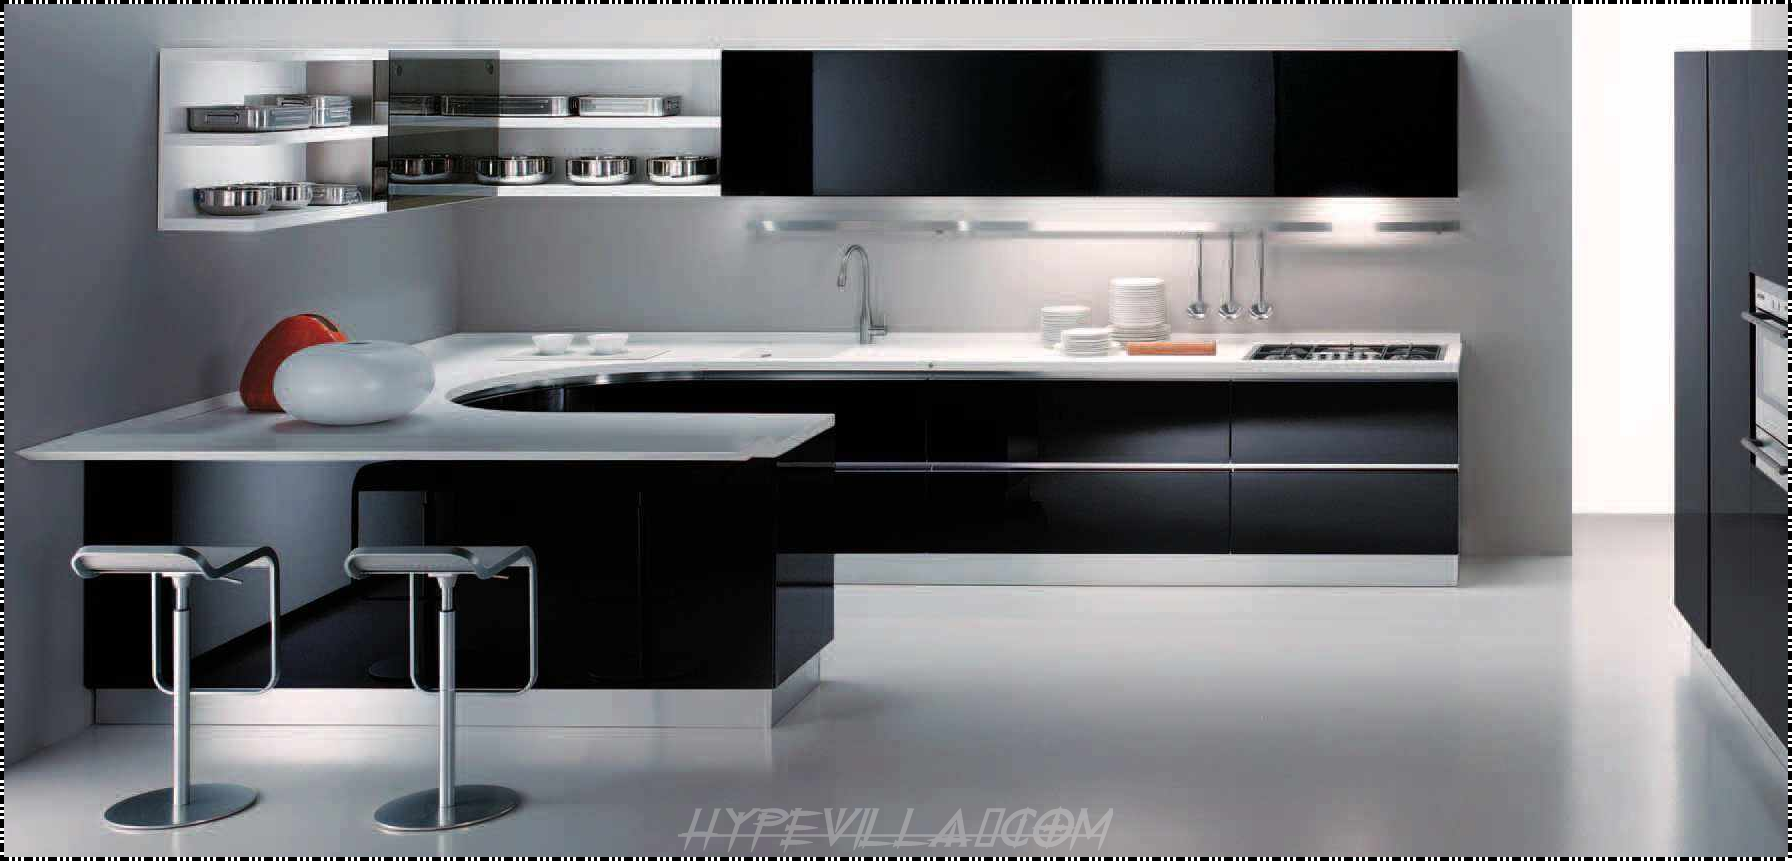 Inside a mansion modern kitchen new modern home designs for Interior designs for bedroom cupboards